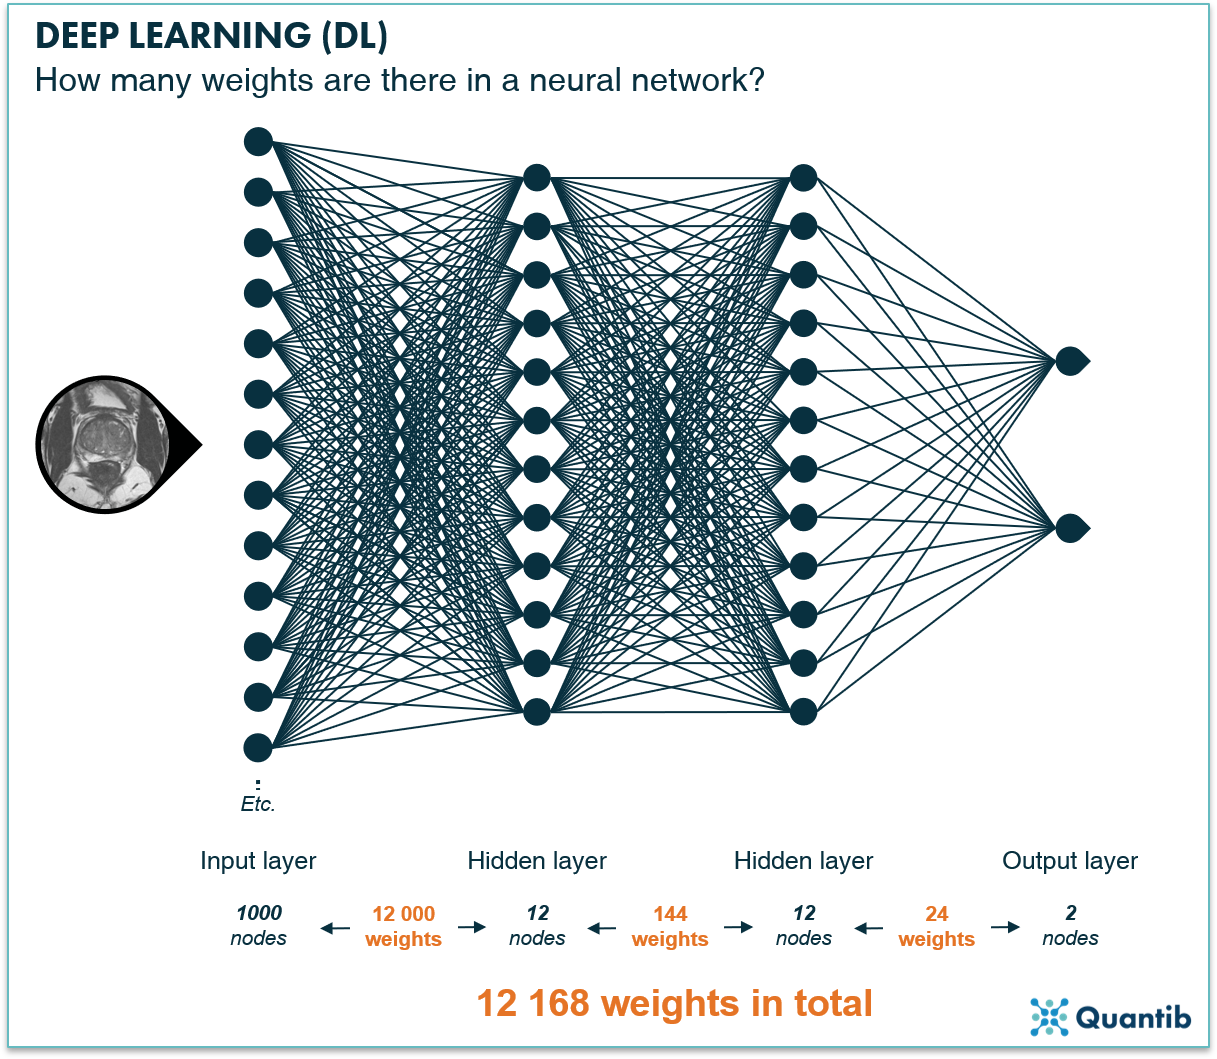 schematic figure illustrating deep learning in radiology explaining the amount of nodes in a deep neural network